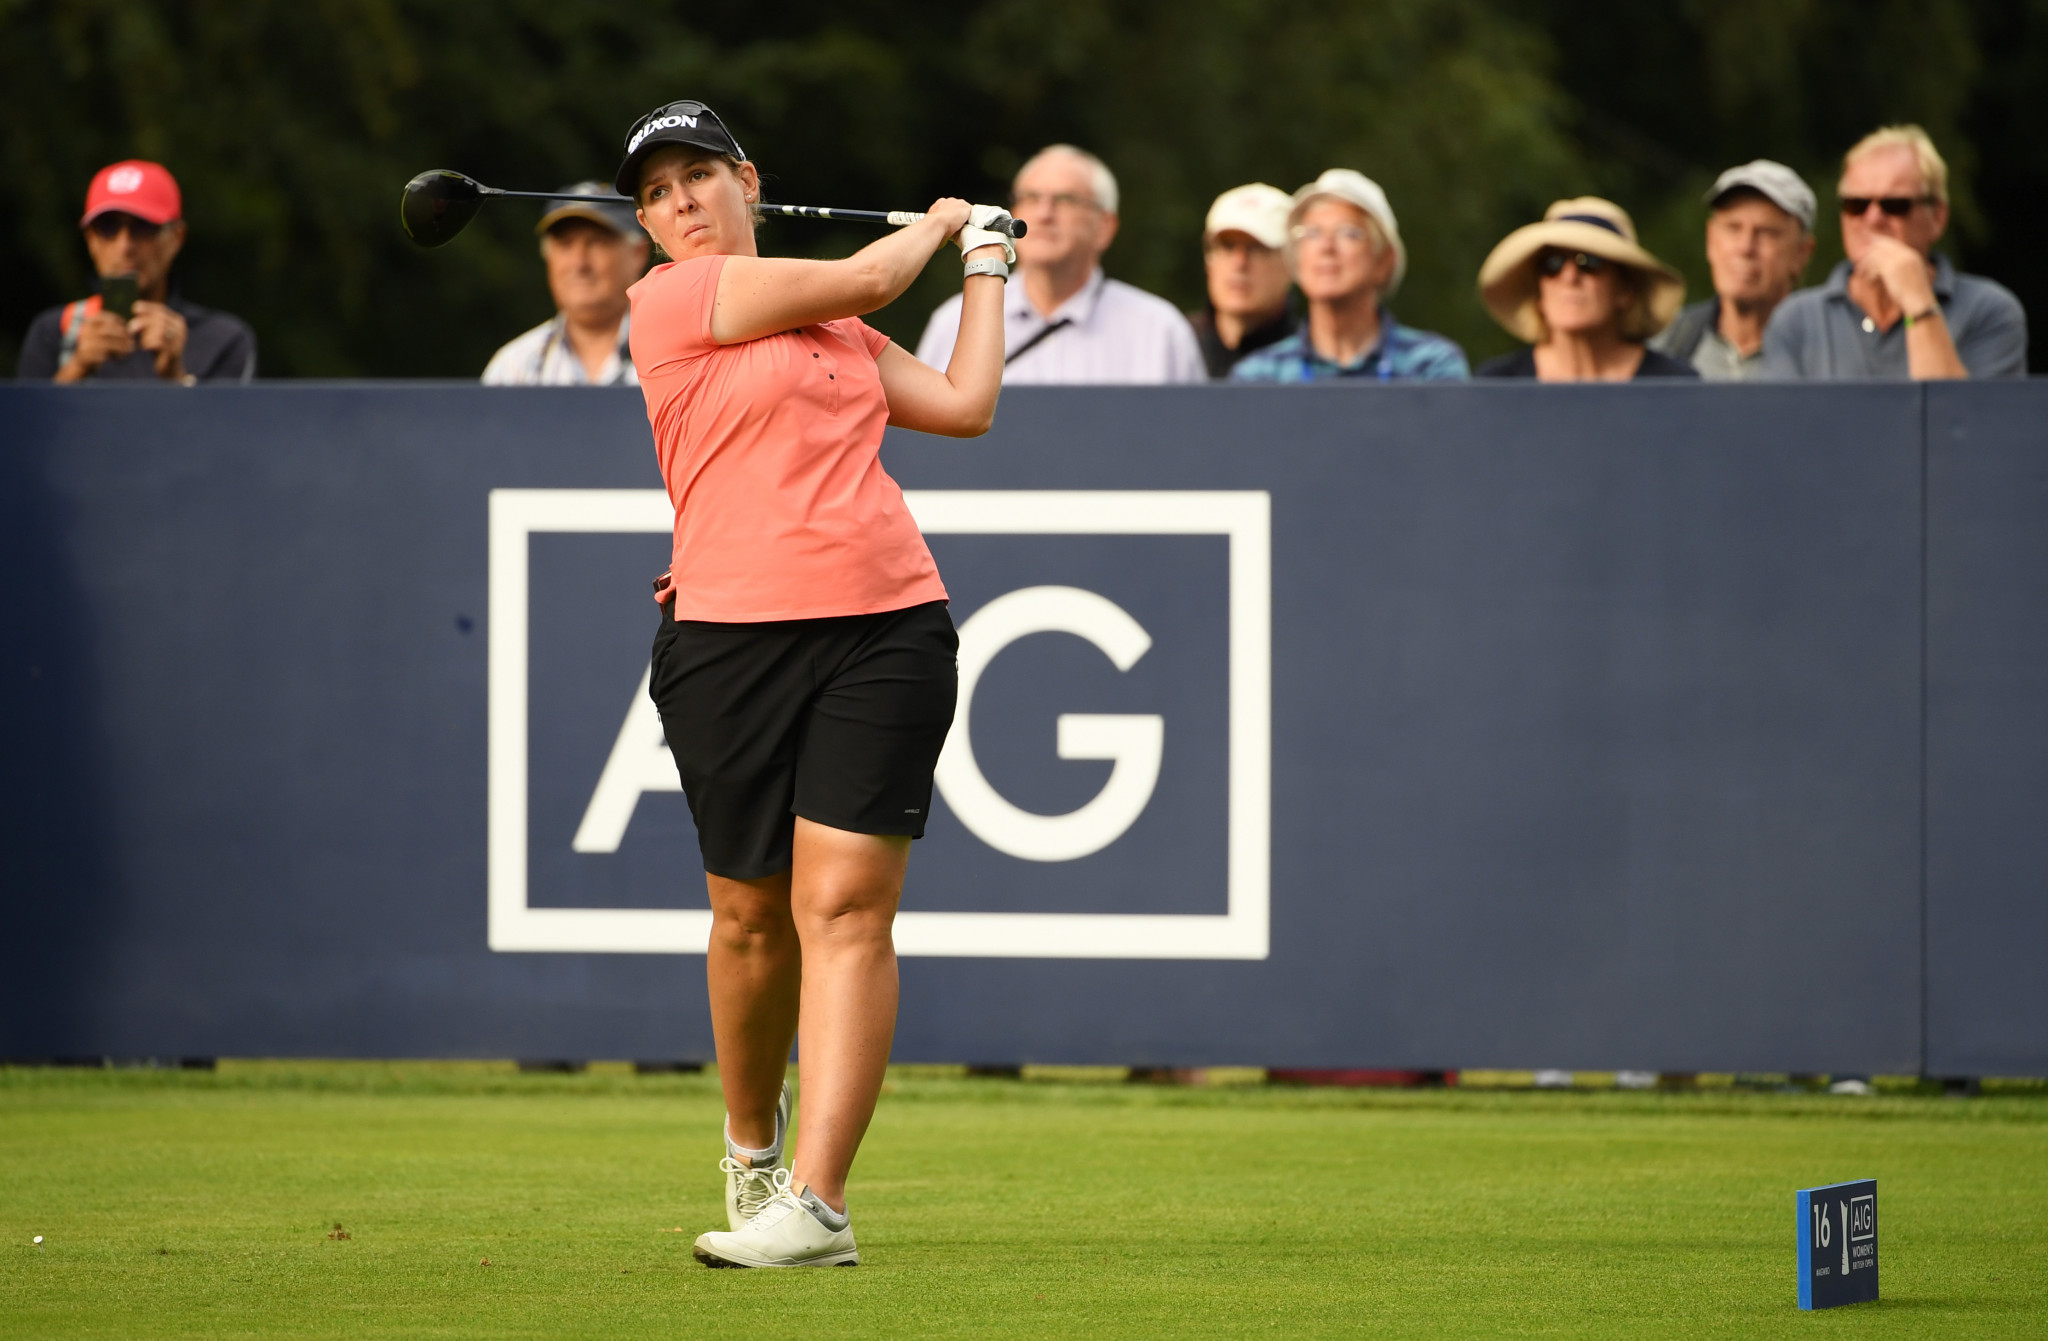 Buhai extends lead at Women's British Open after another strong round